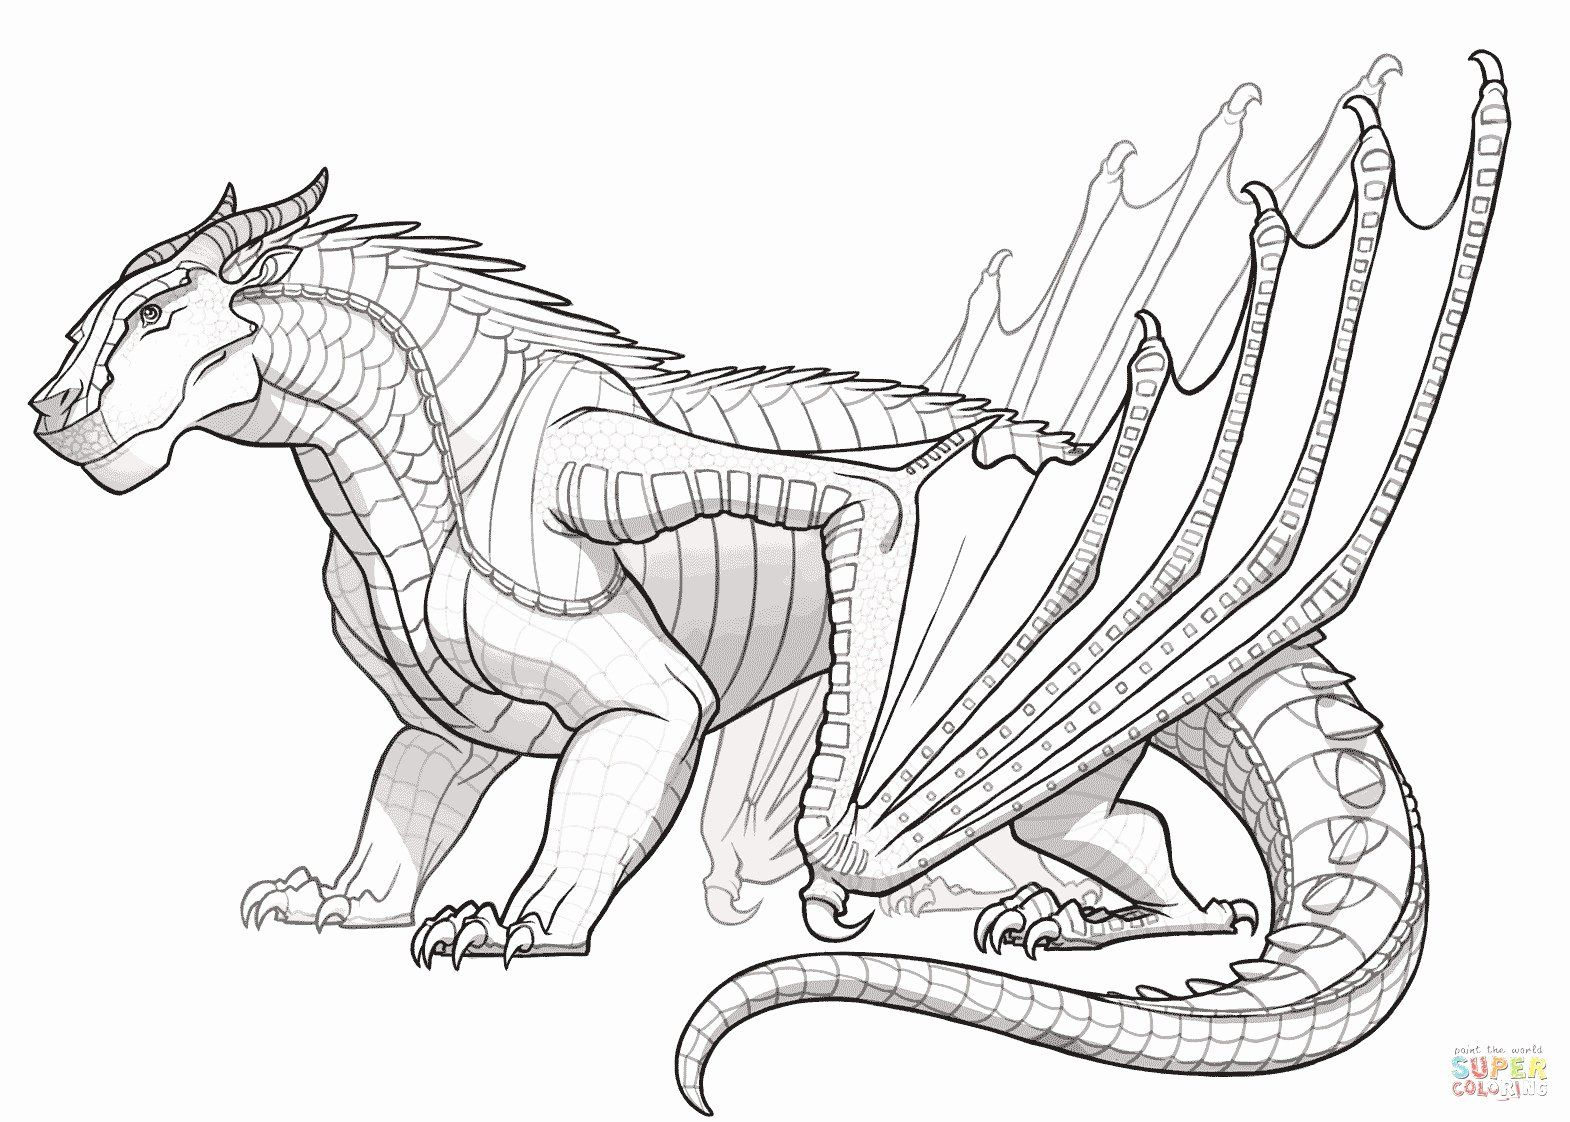 Chibi Animal Coloring Pages Inspirational Hard Dog Coloring Pages Inspirational Hard Dog Co Zoo Animal Coloring Pages Horse Coloring Pages Dragon Coloring Page